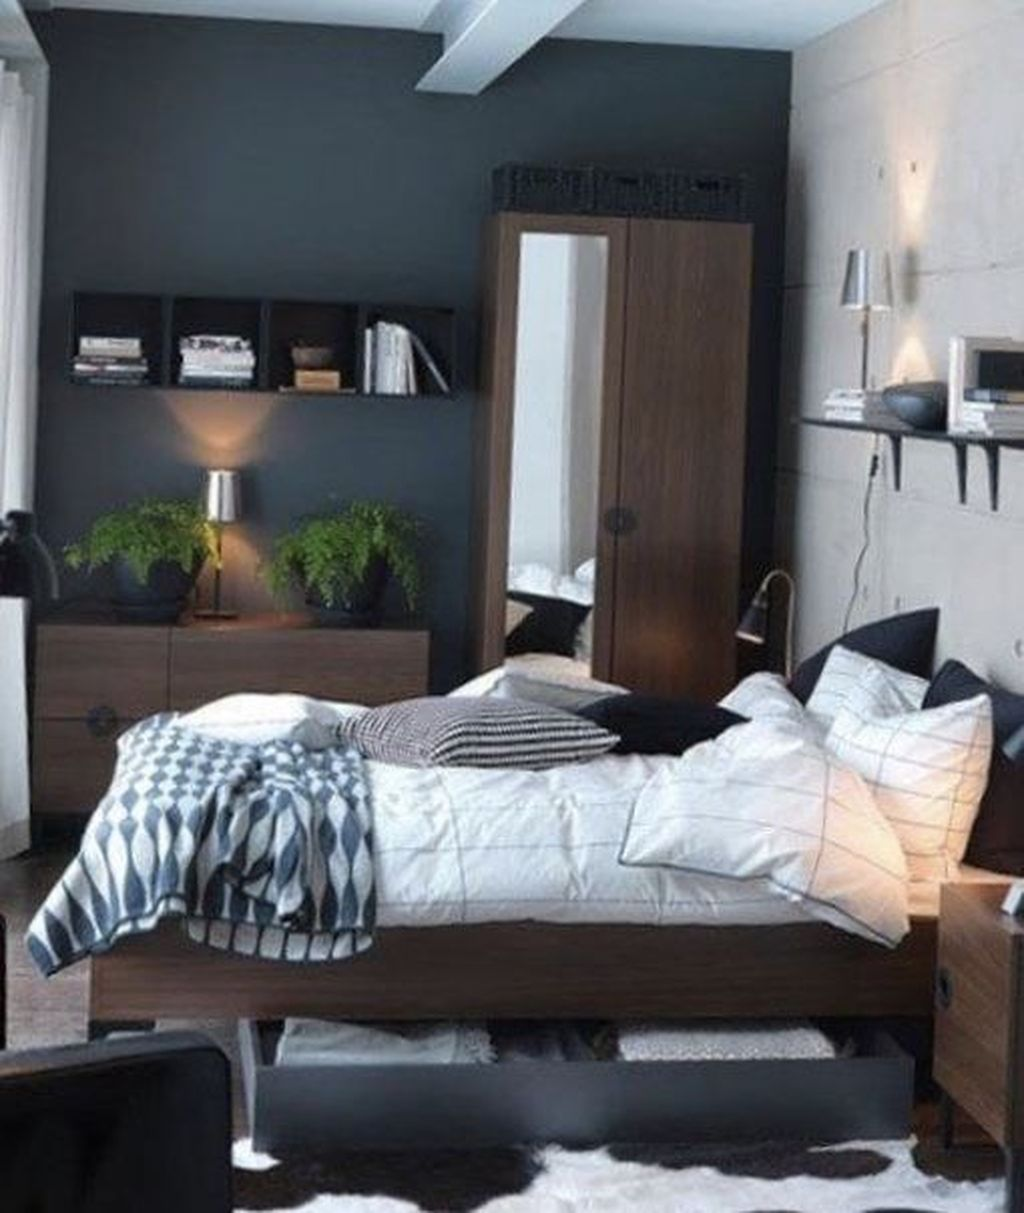 43 Cozy Master Bedroom Inspirations On A Budget images